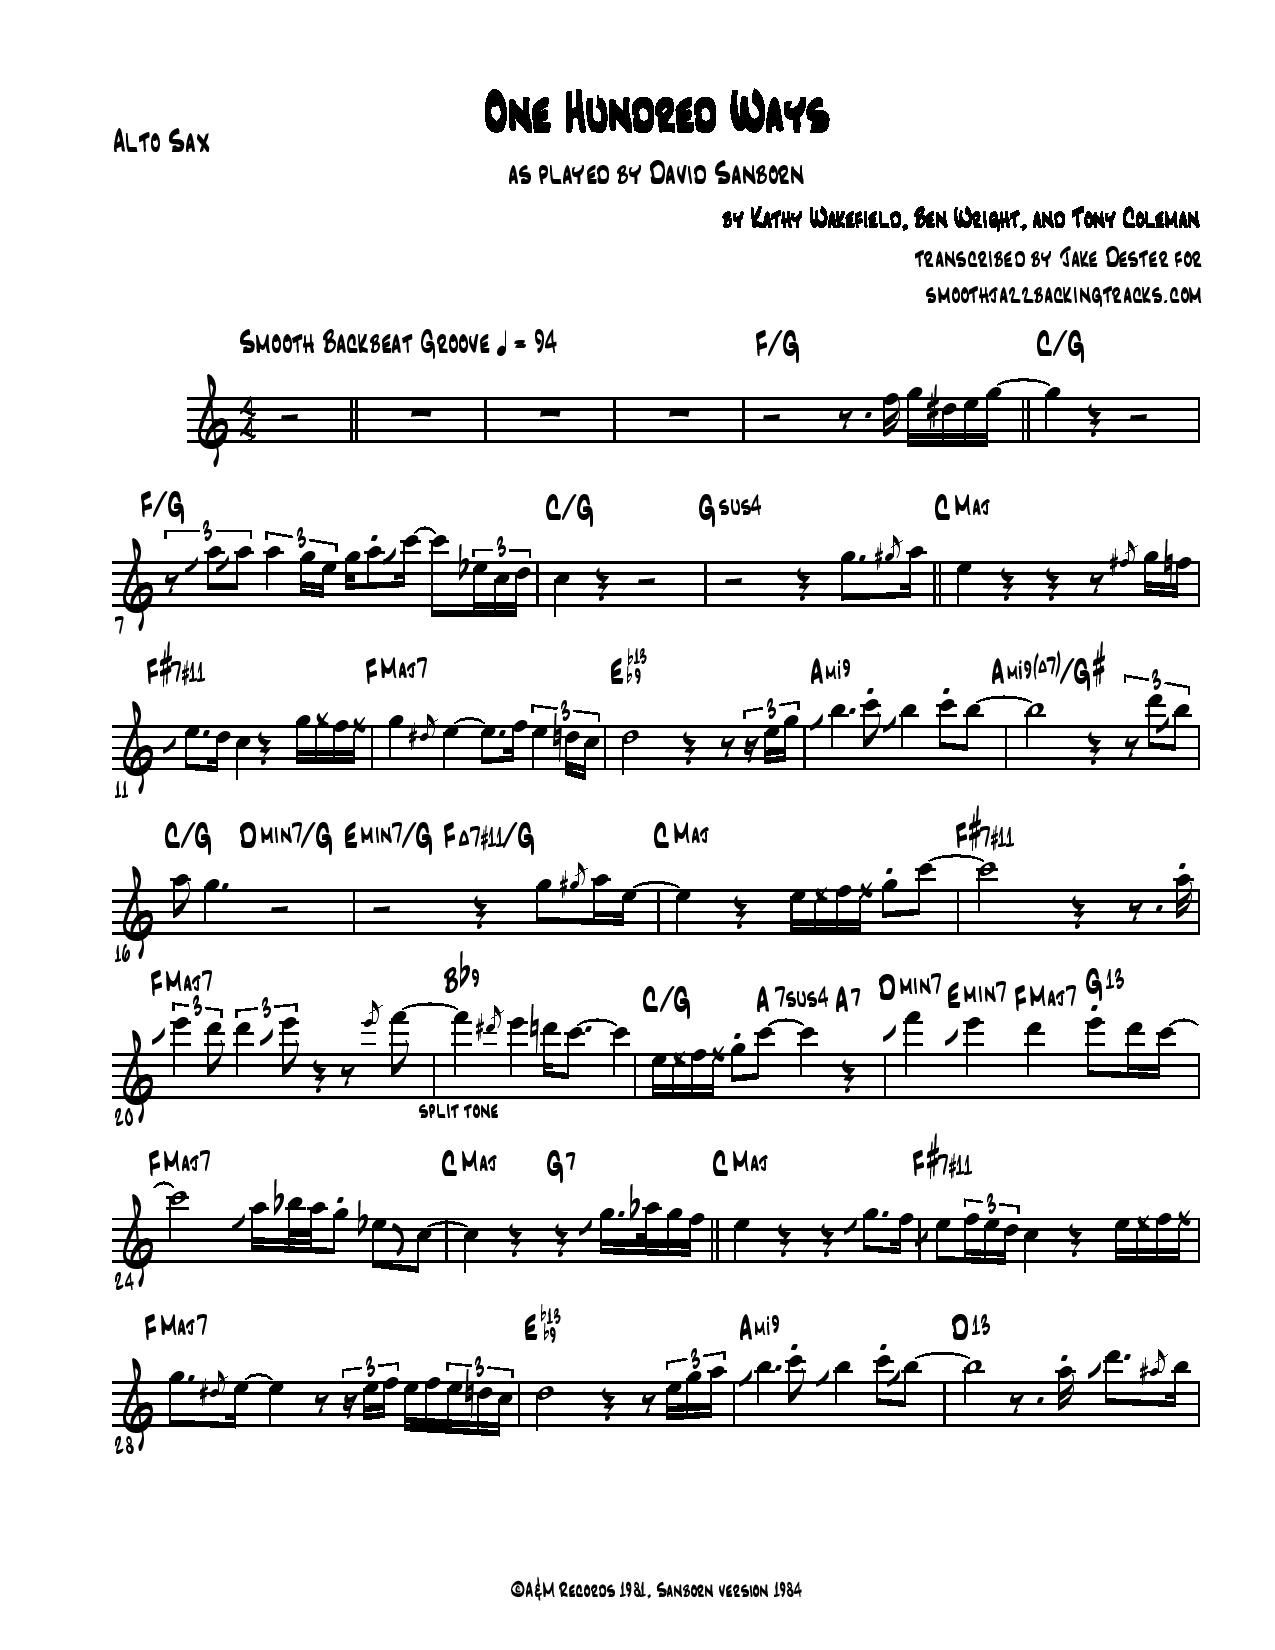 Smooth Jazz Piano Sheet Music Pdf - jazz piano voicings made easysax solo sheet music in ...